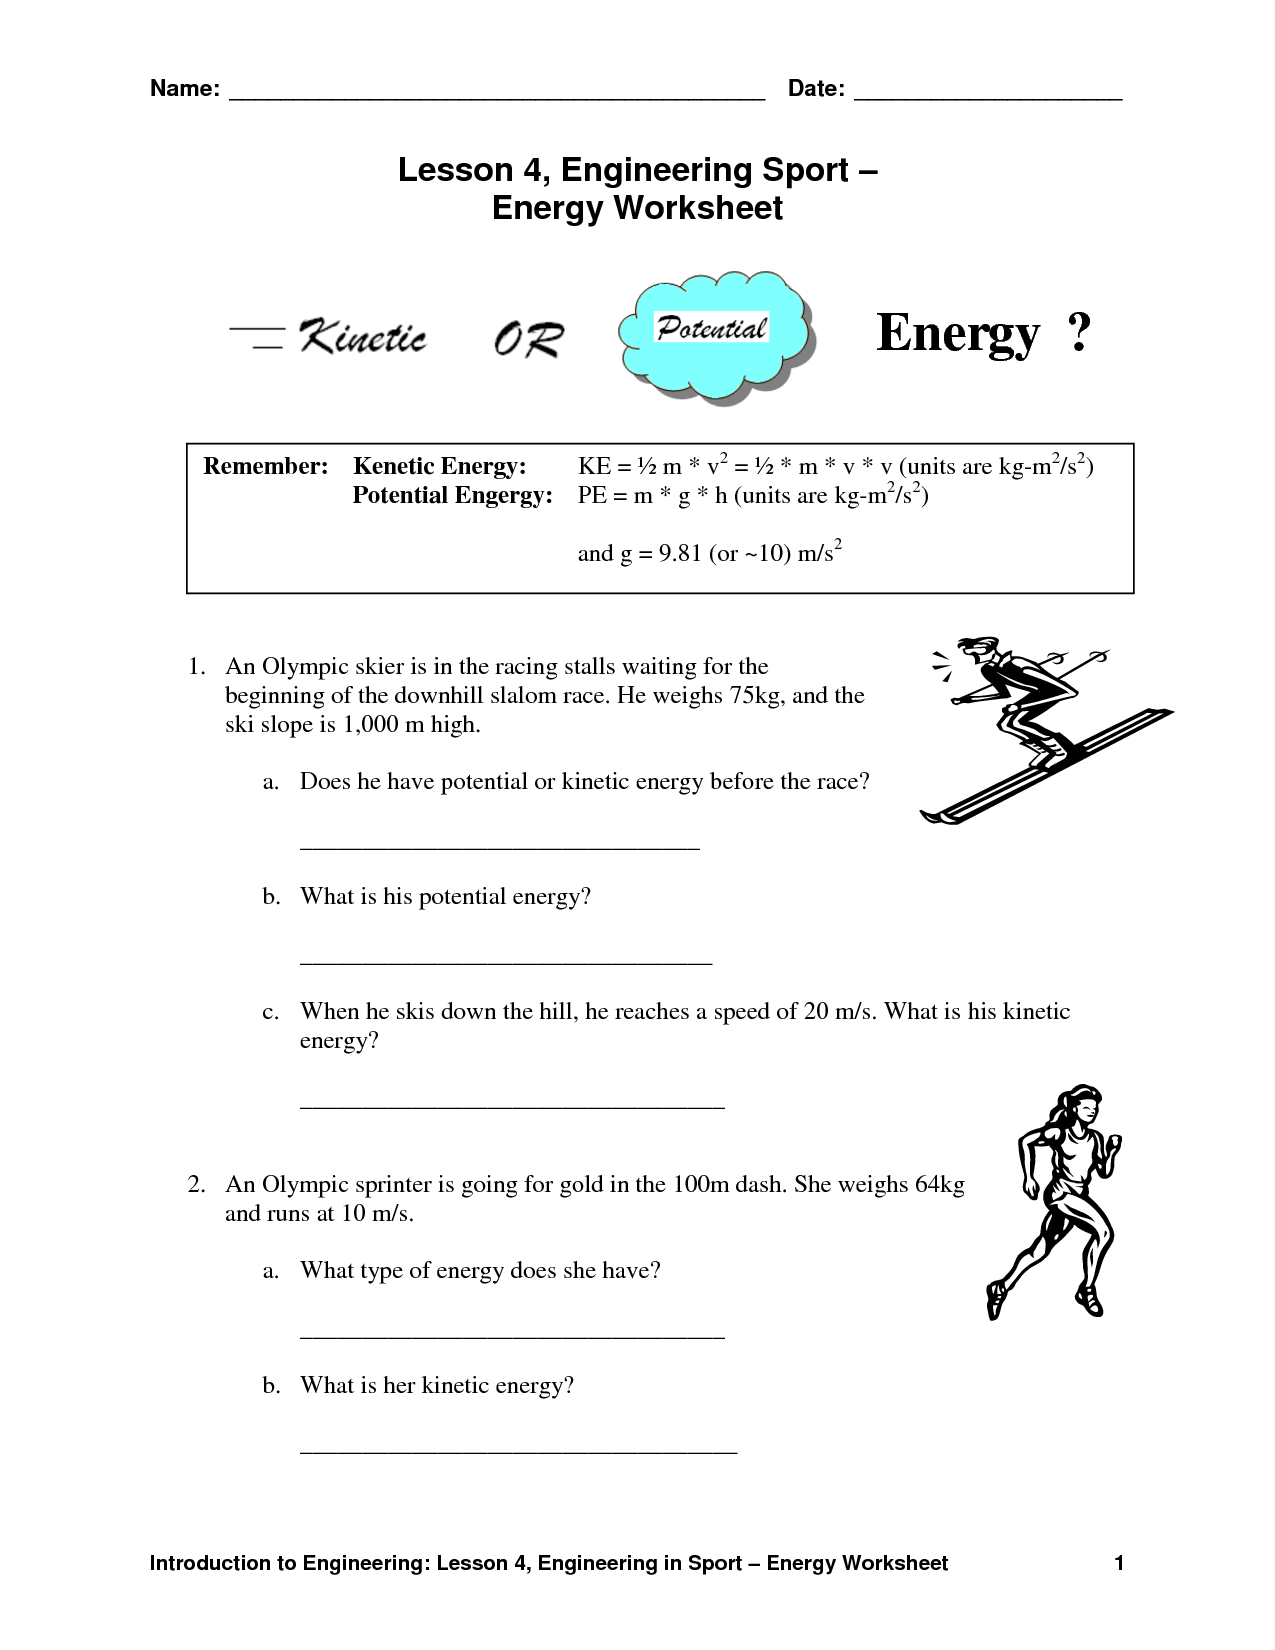 Worksheet On Potential And Kinetic Energy